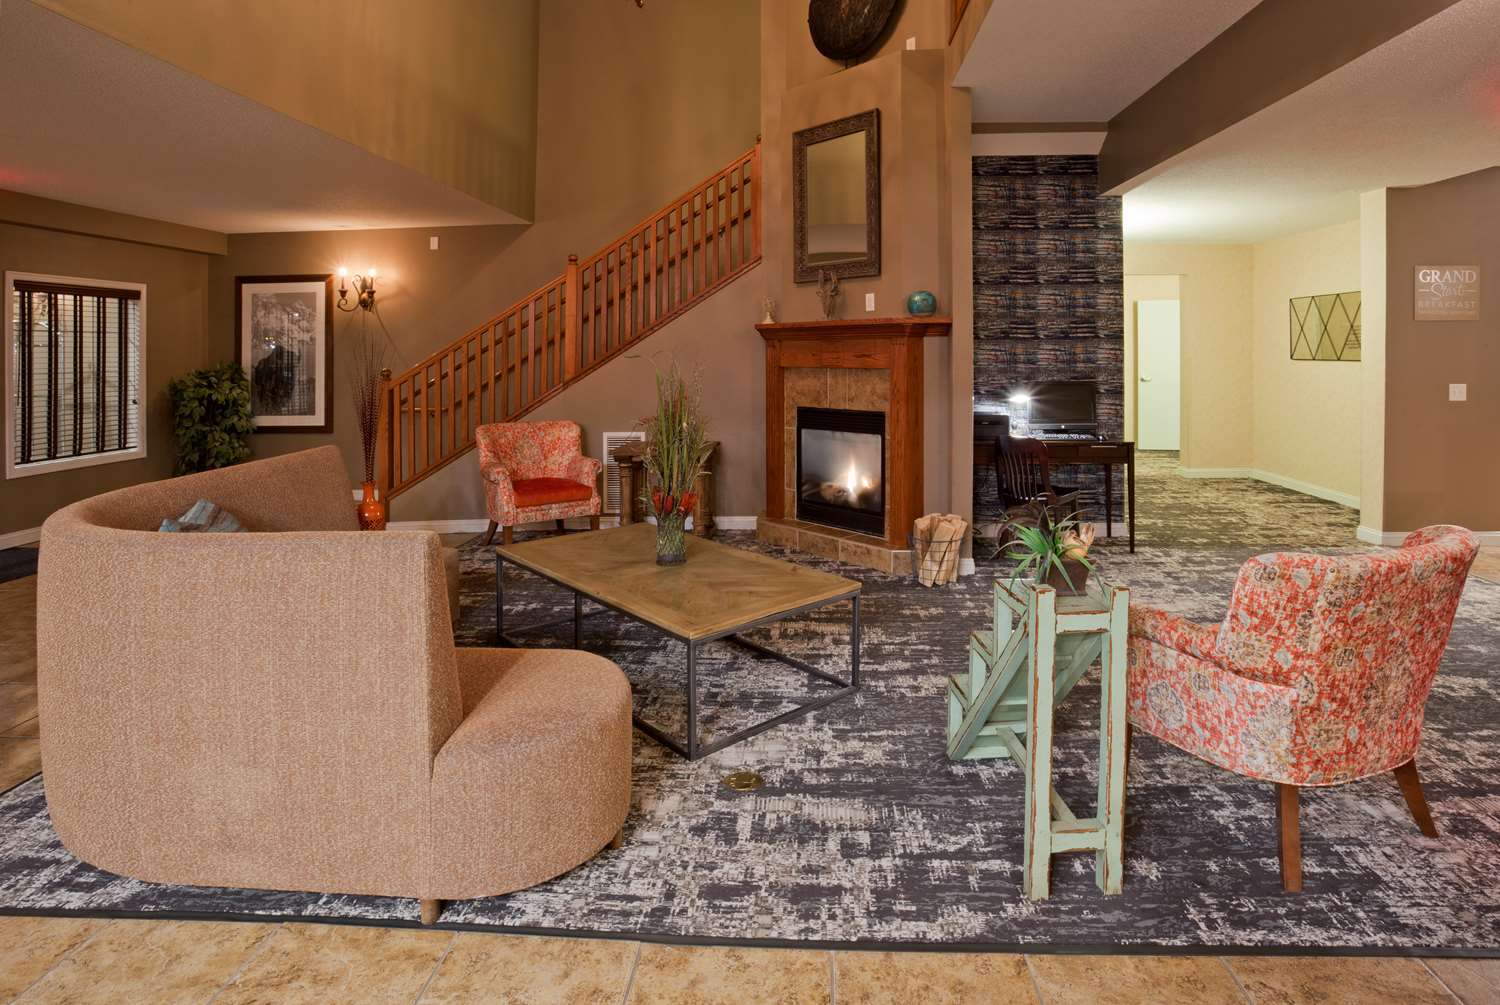 Lobby - Grandstay Residential Suites Rapid City